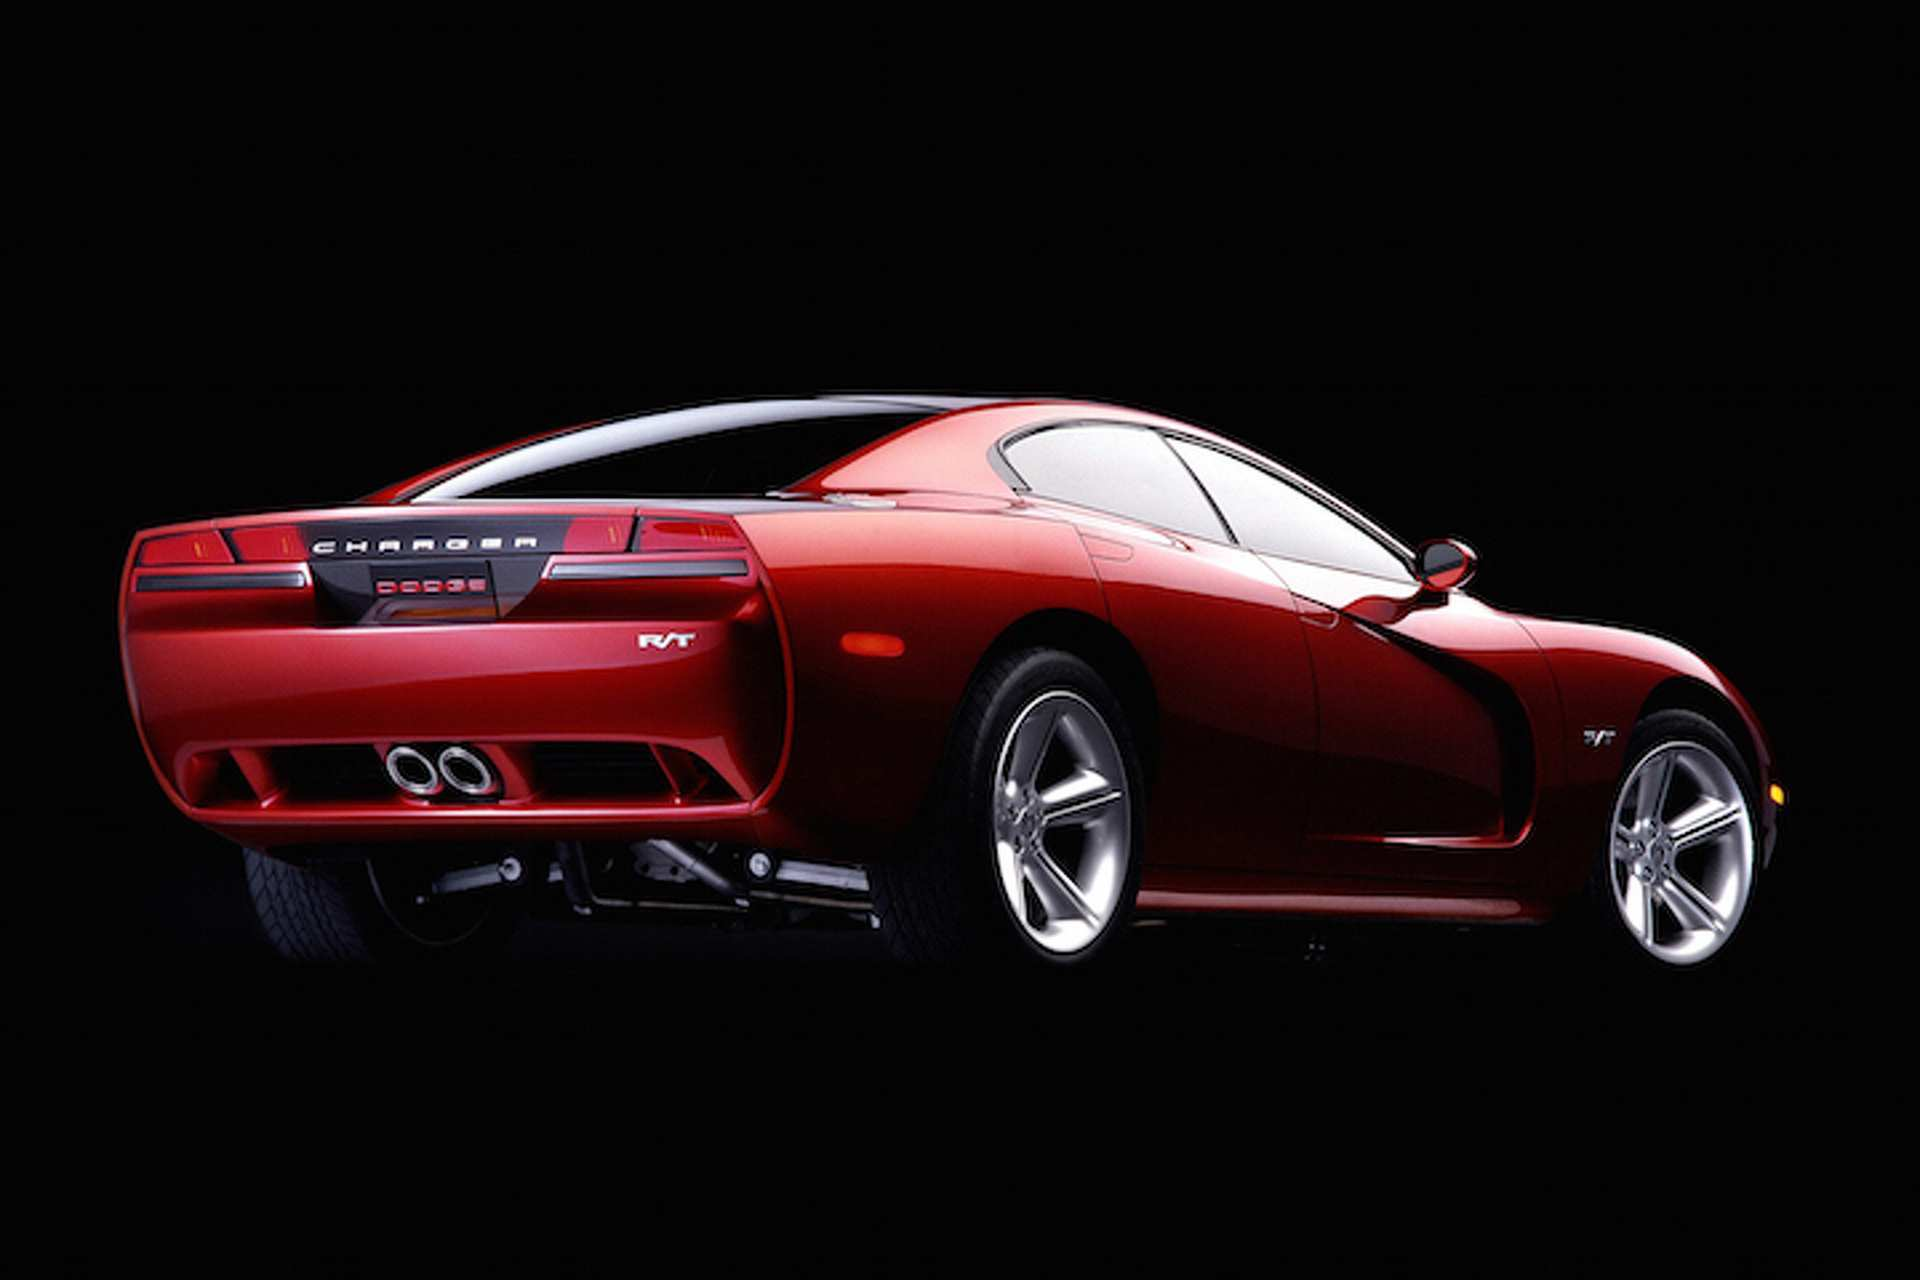 94 Best Review 2020 Dodge Barracuda Specs Spy Shoot by 2020 Dodge Barracuda Specs